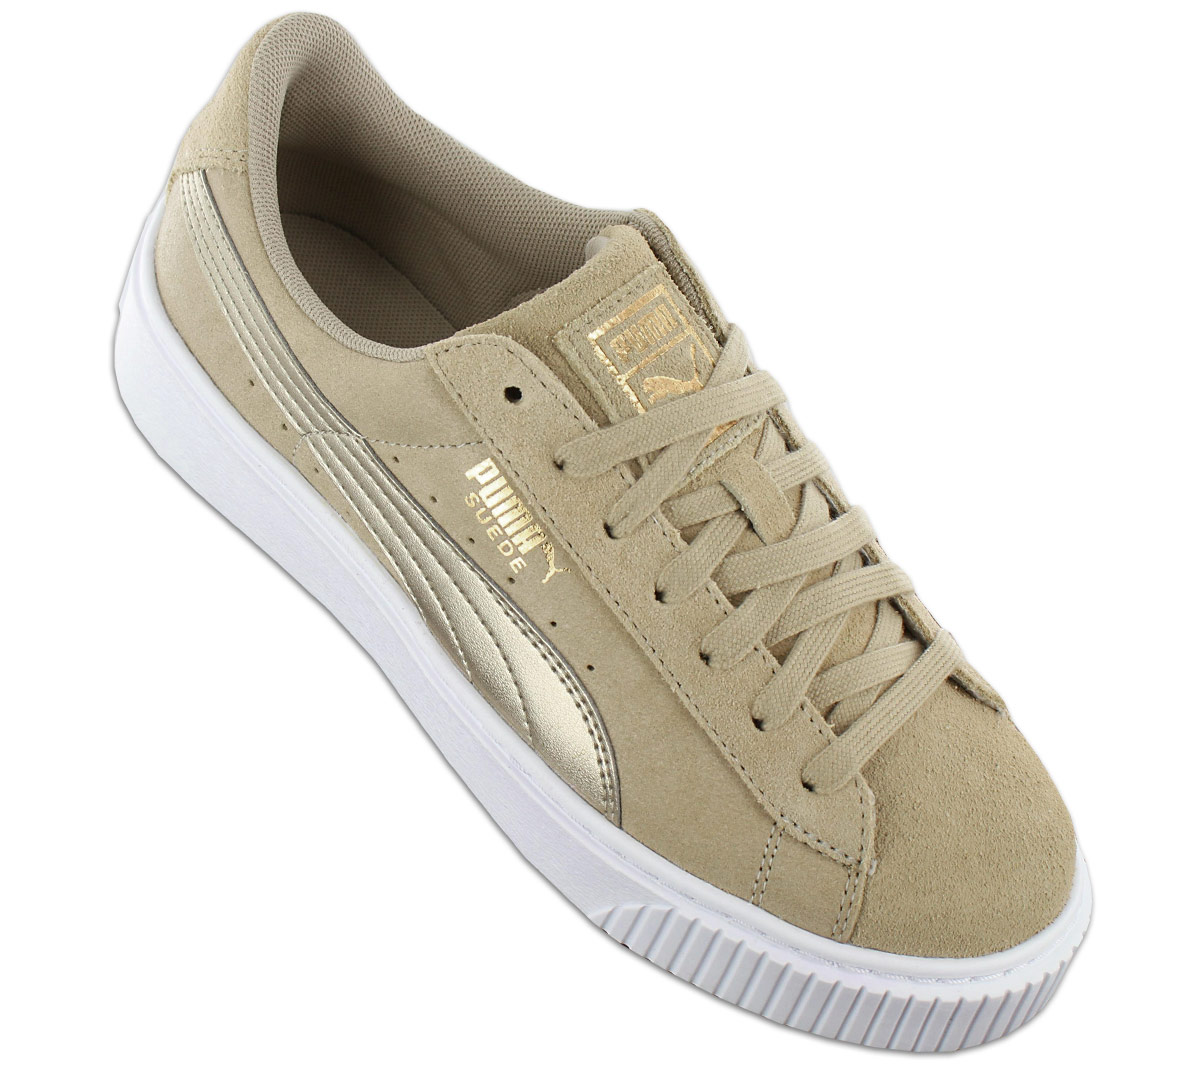 b54d36cfe44f NEW Puma Suede Platform Safari Wns 364594-01 Women Shoes Trainers Sneakers  SALE